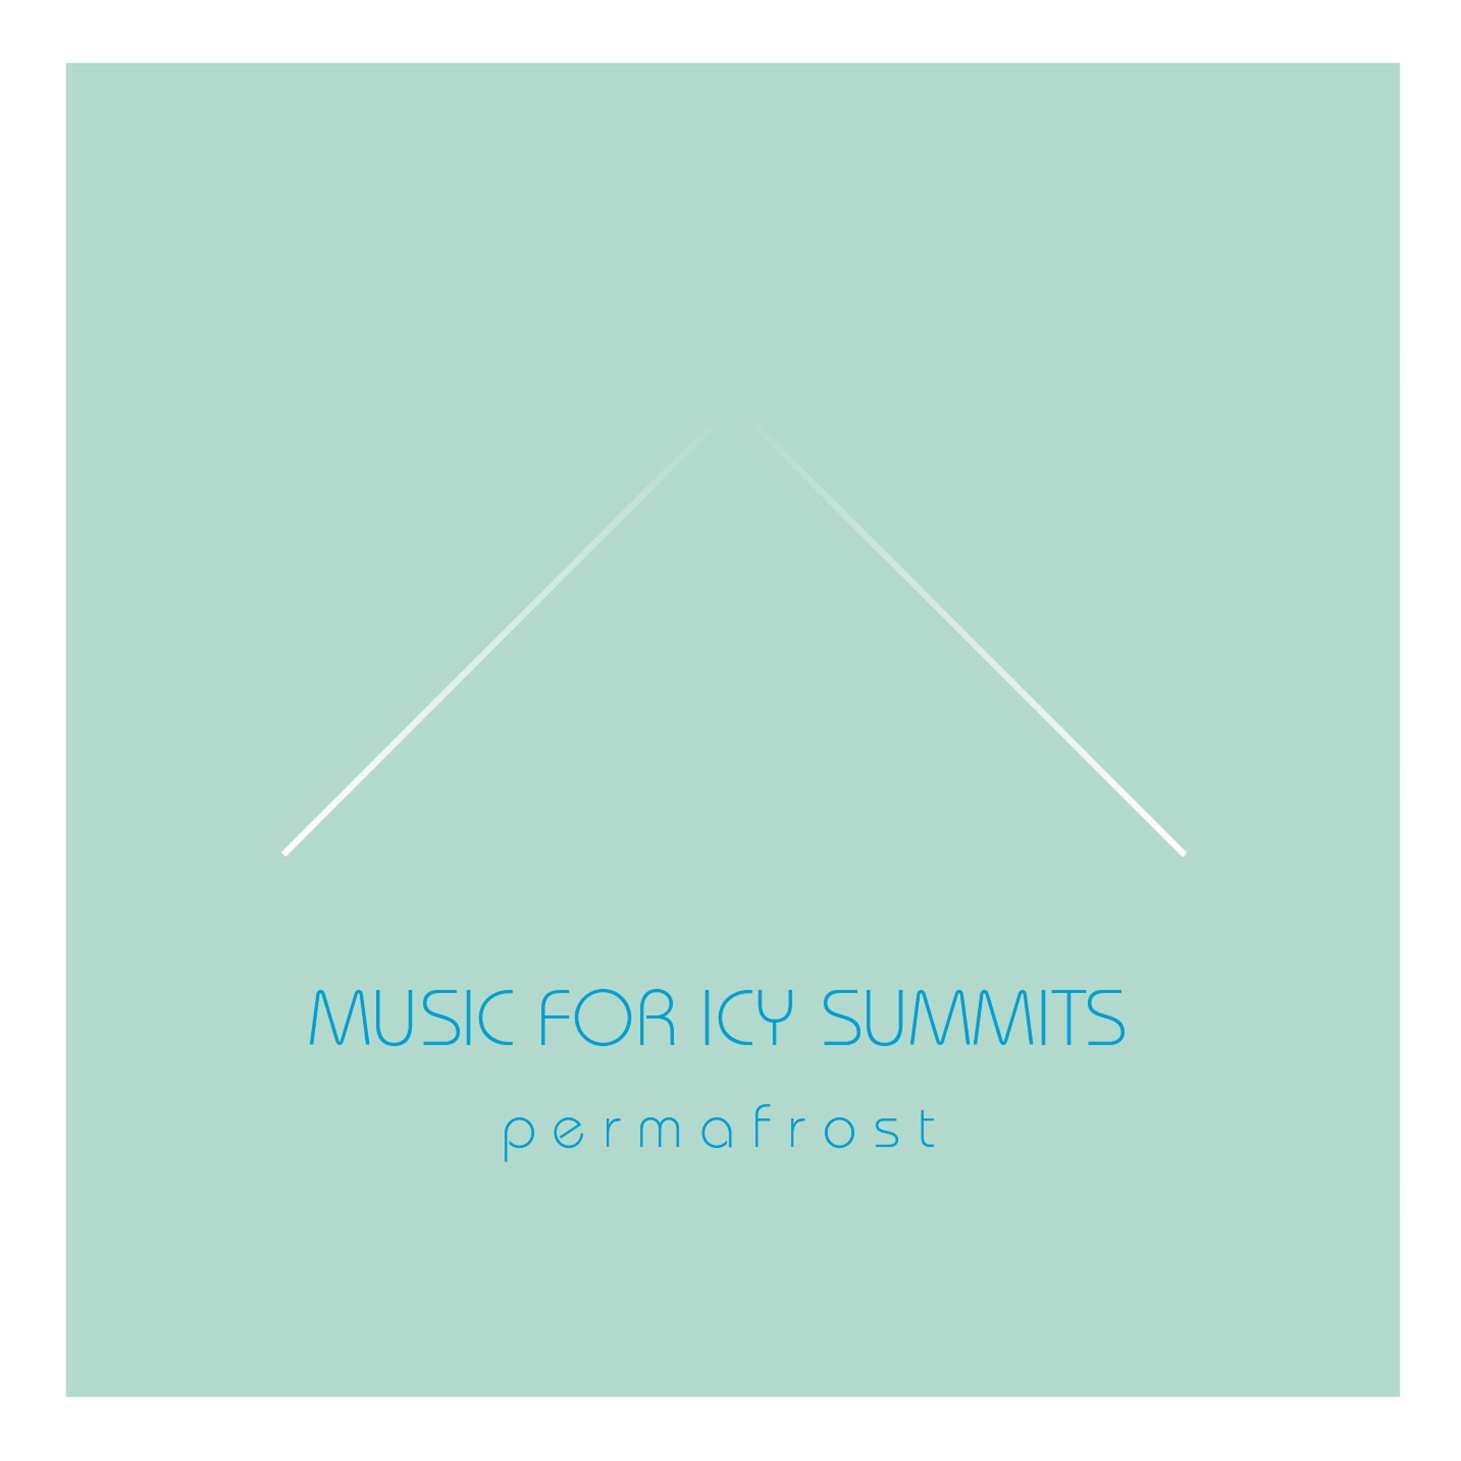 Review of 'Music for Icy Summits' by permafrost on mobiusspin (mbsspn027)